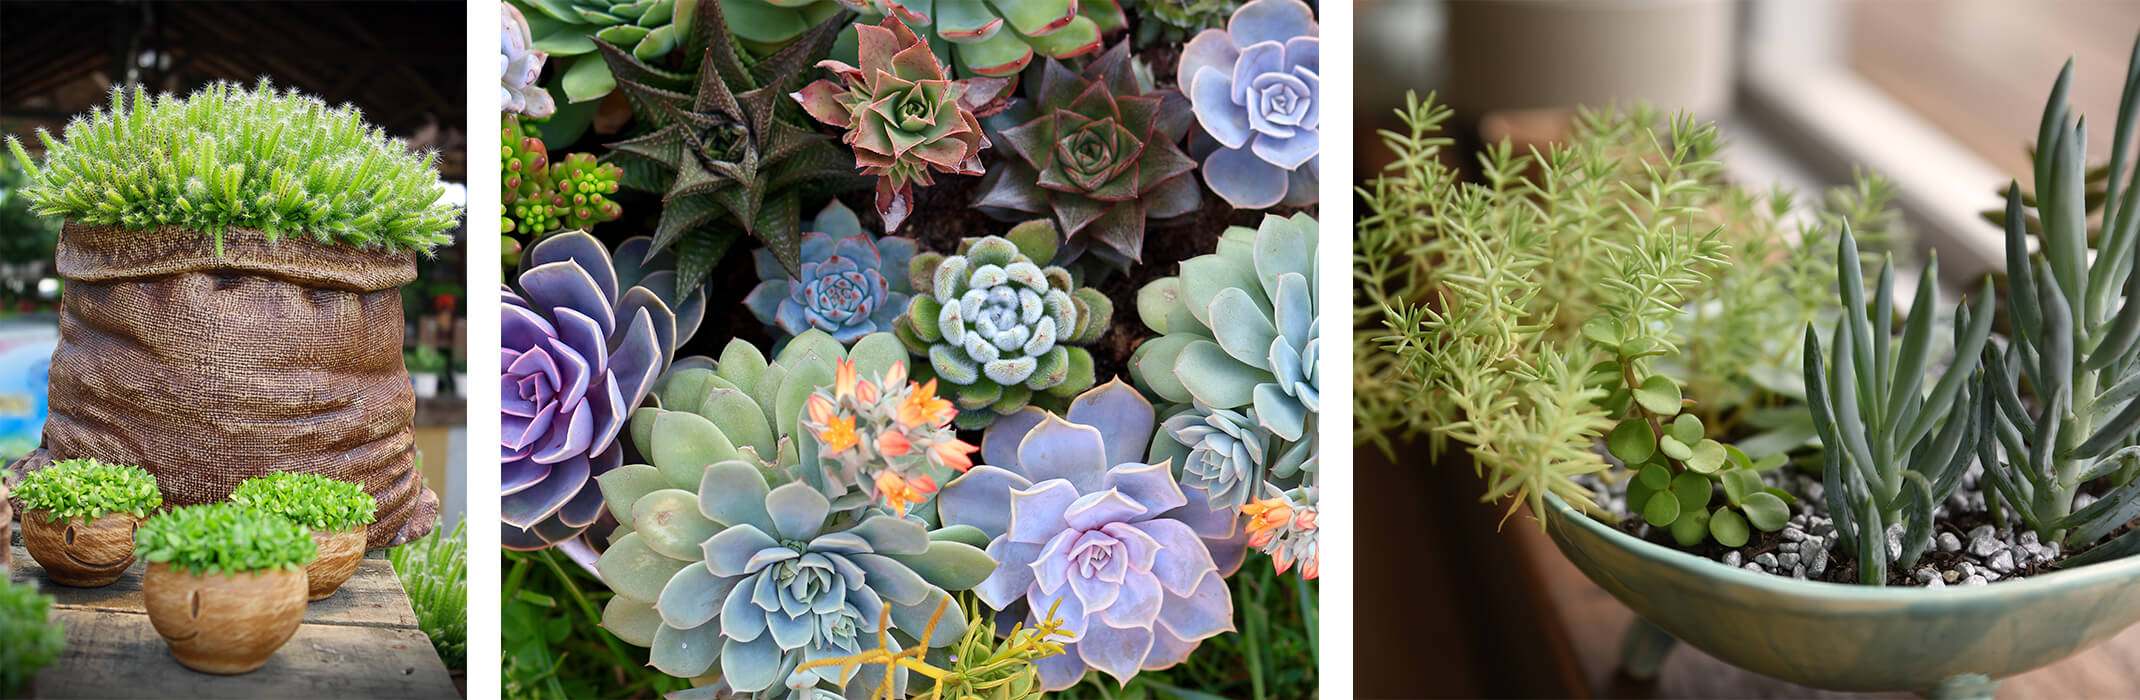 3 images: Succulents in a ceramic pot that looks like a paper bag and other pots, a wide variety of colorful succulents, and a few succulent varieties planted in a light sage green bowl near a window